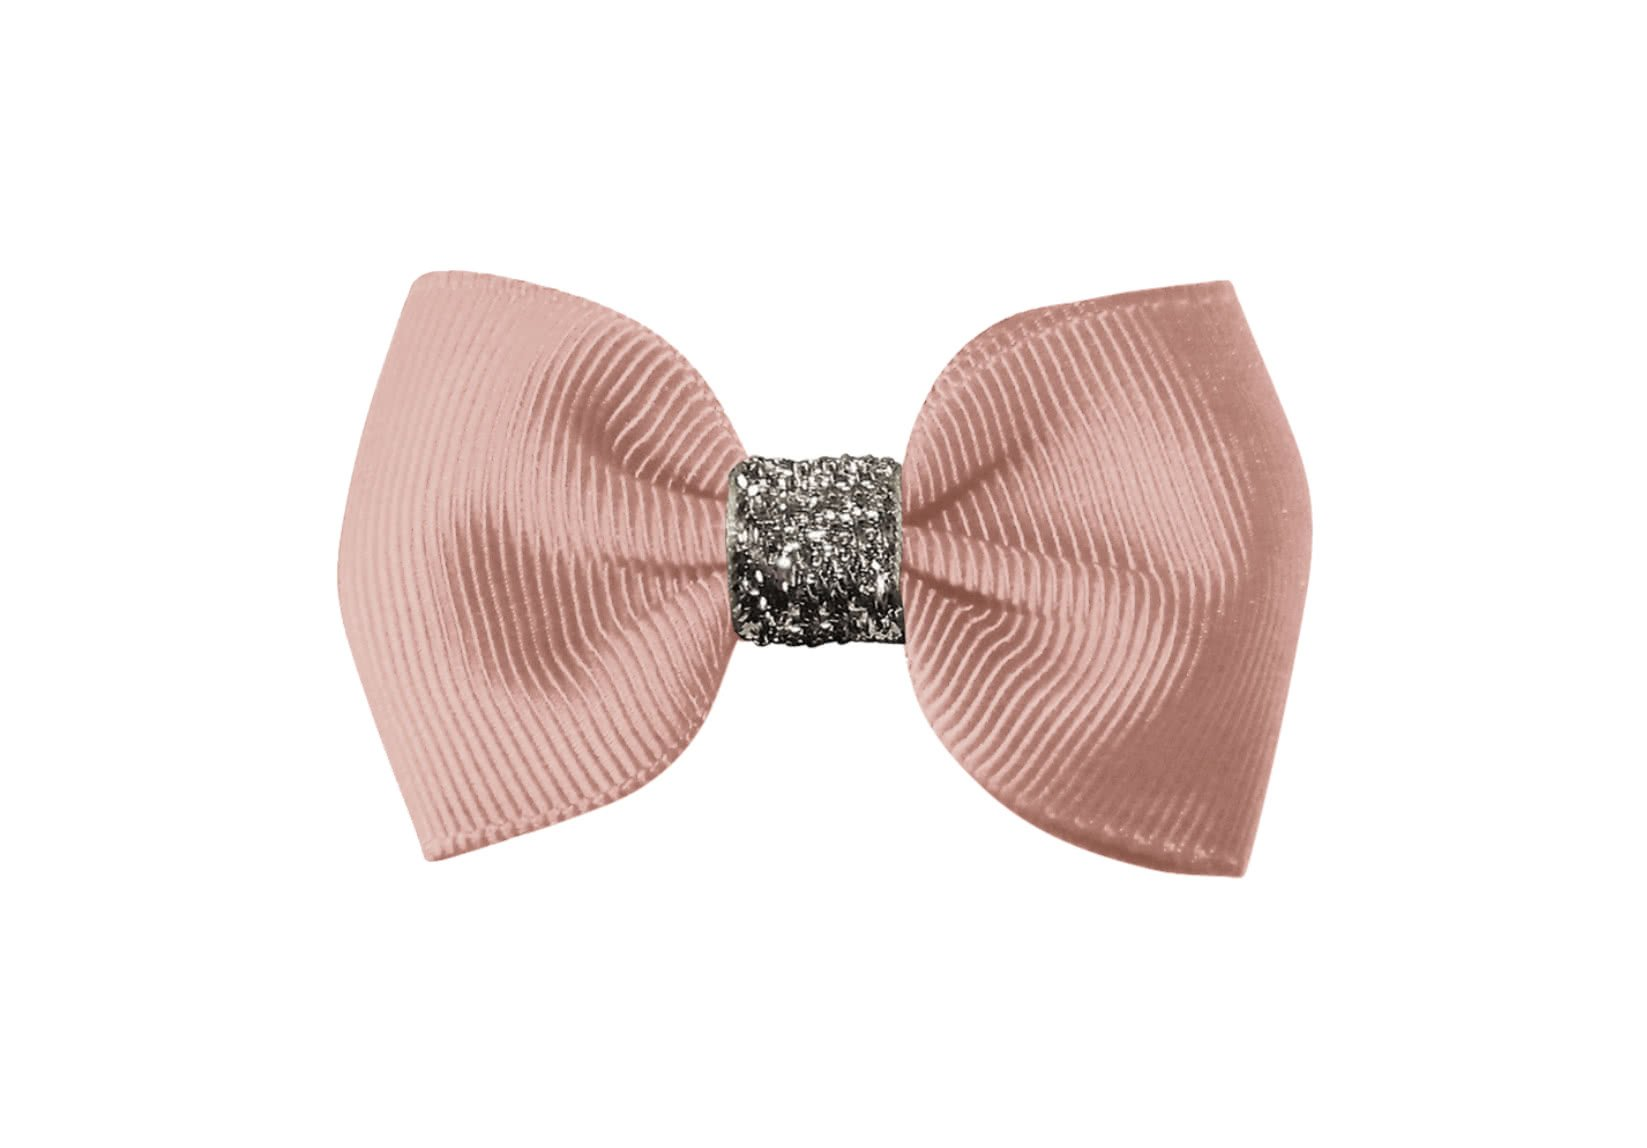 Small Bowtie Bow – Alligator Clip